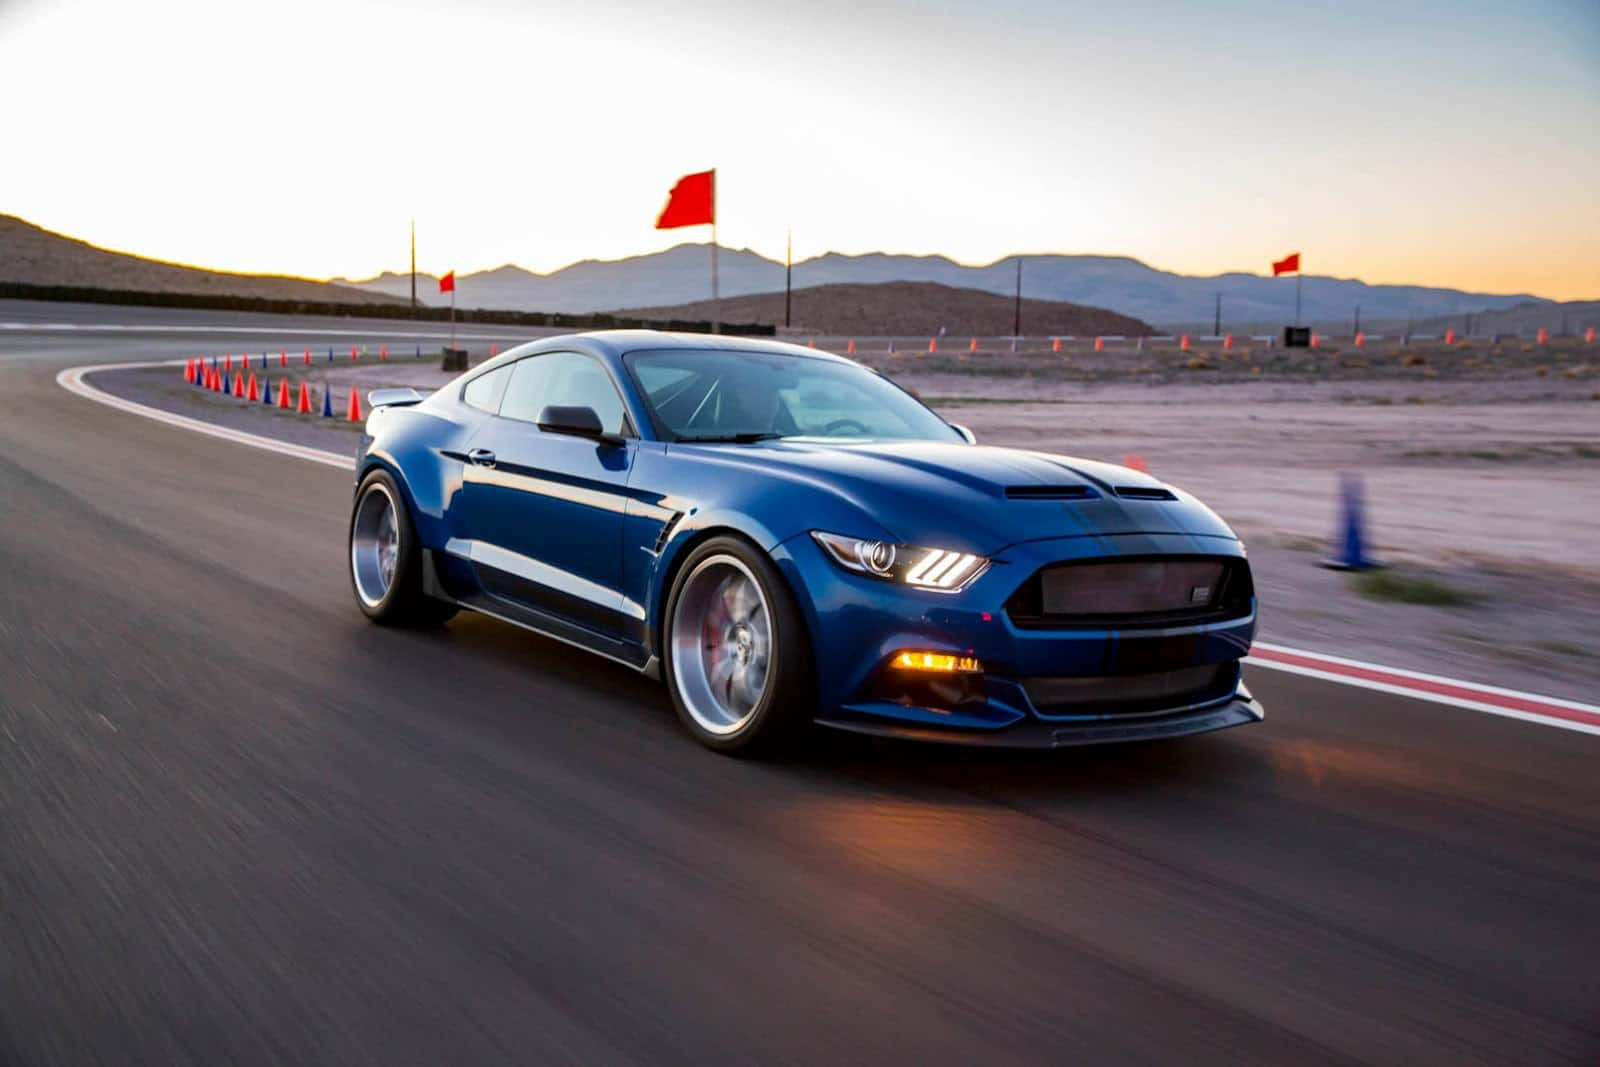 Shelby's 2017 Super Snake Concept is Out on the Prowl